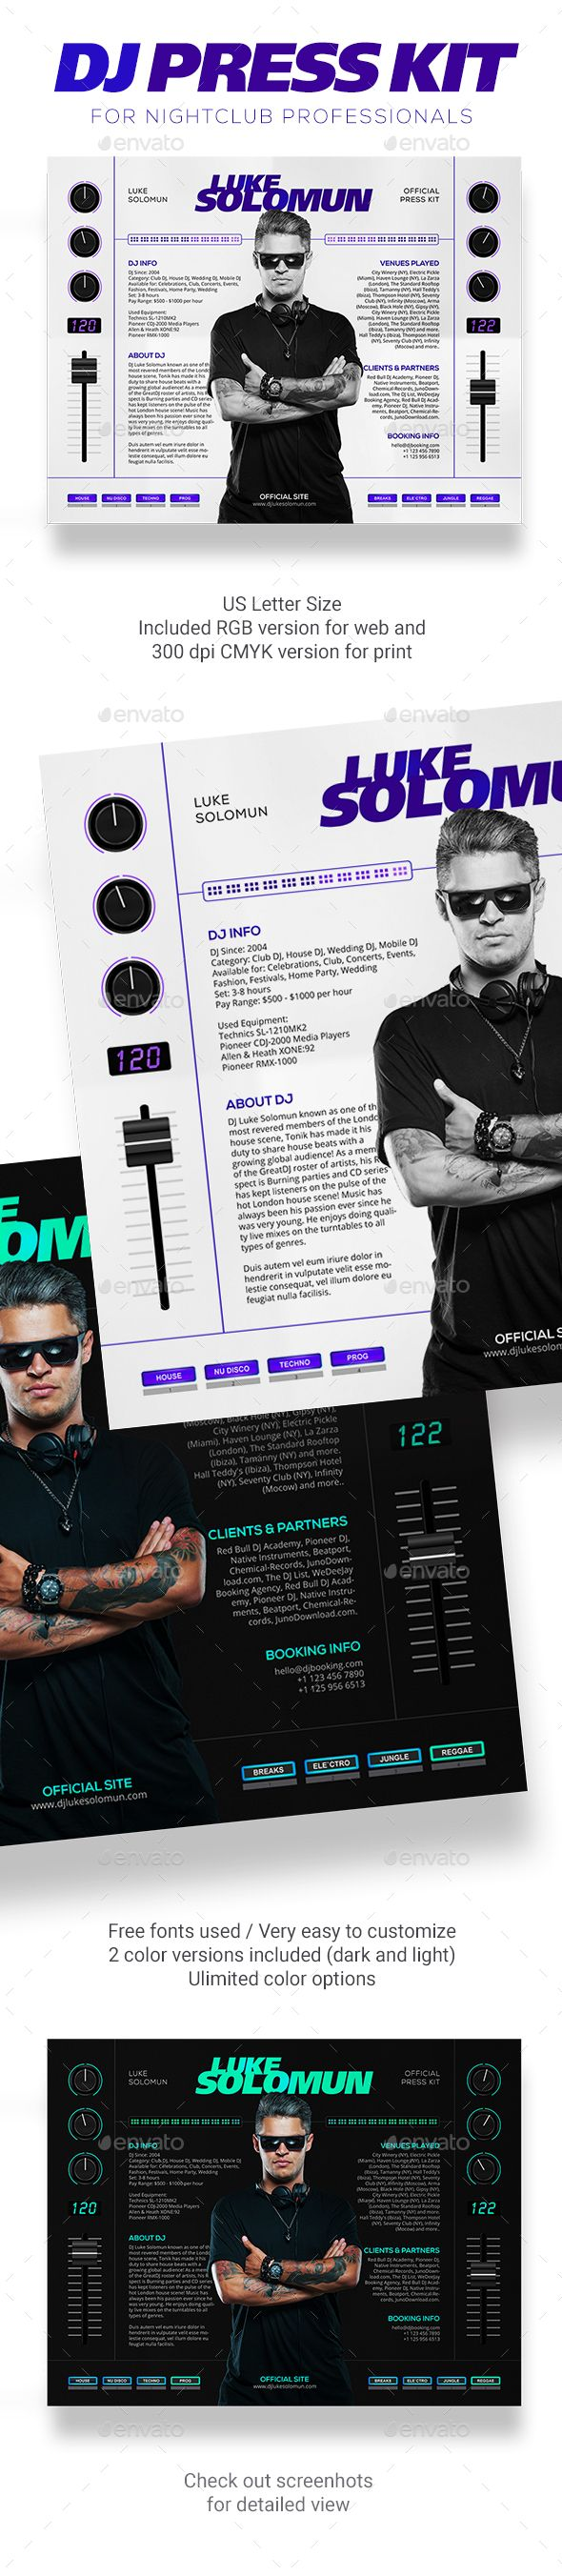 dj press kit template free - 19 best dj press kit and dj resume templates images on